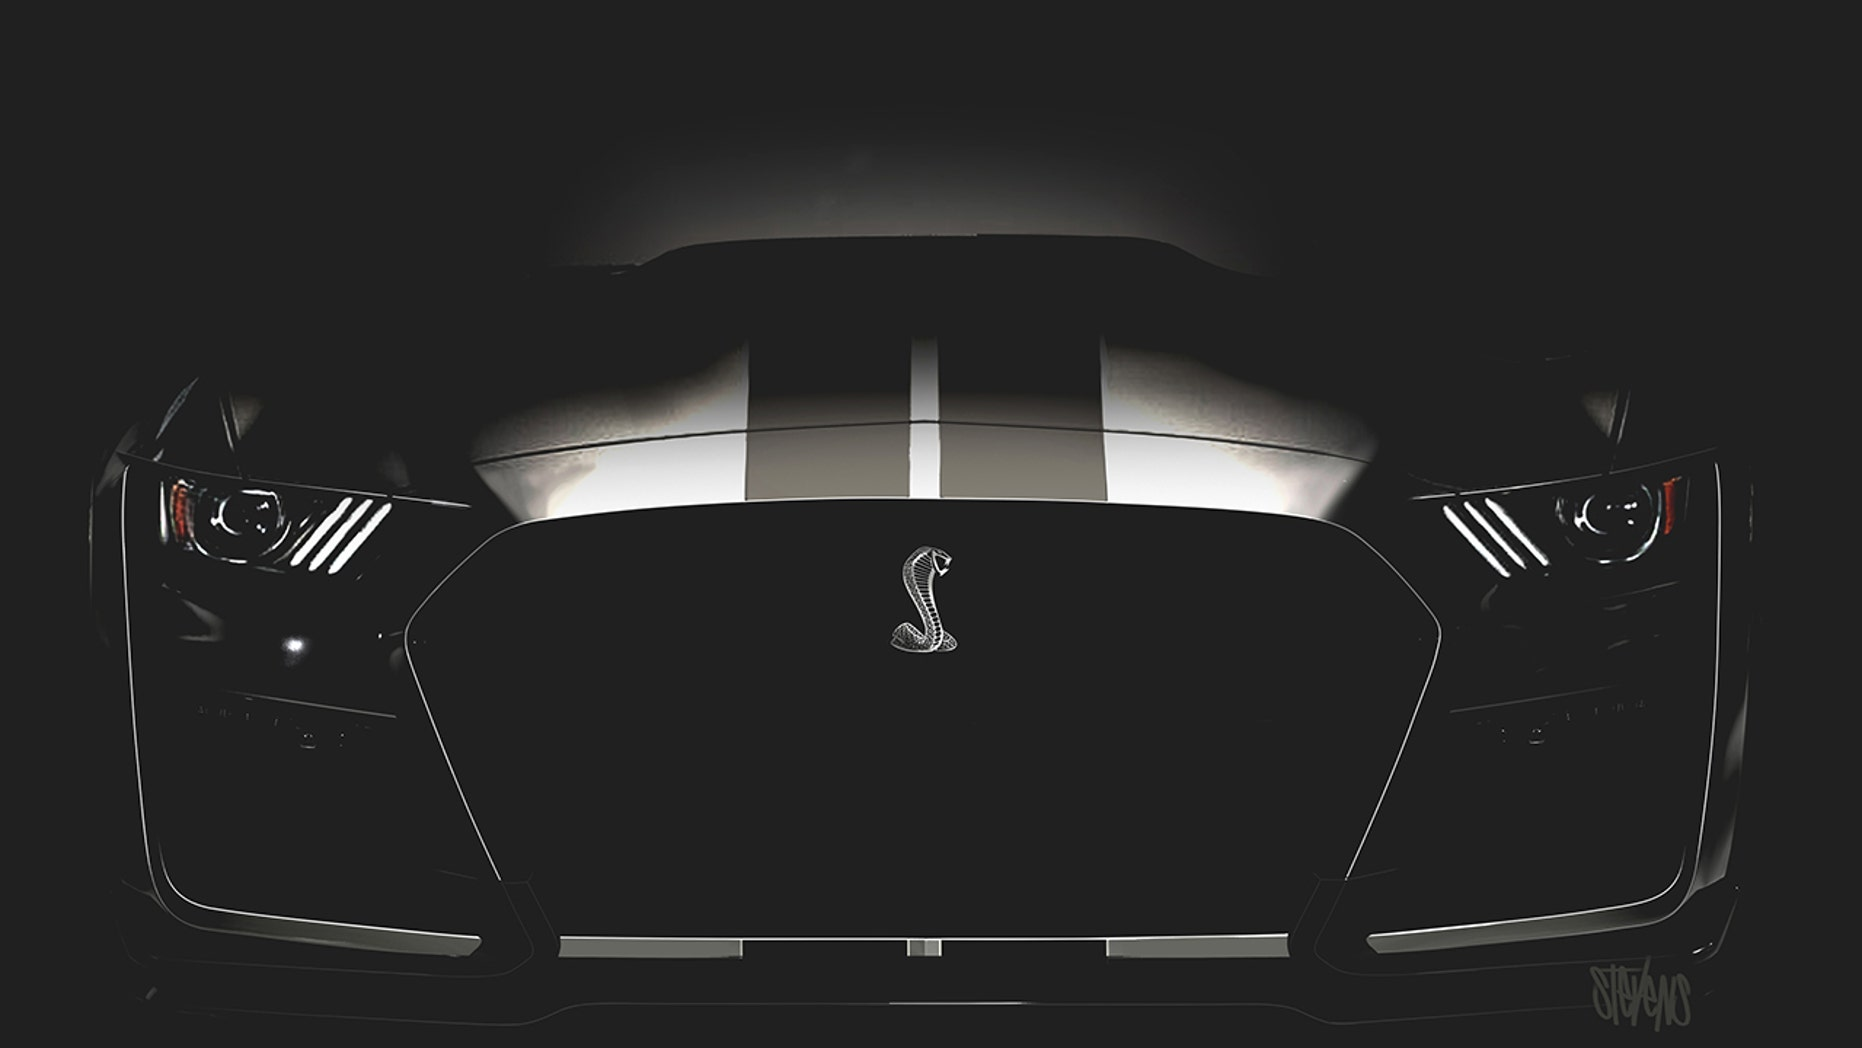 Best Look Yet At The 2019 Ford Mustang Shelby Gt500 Fox News